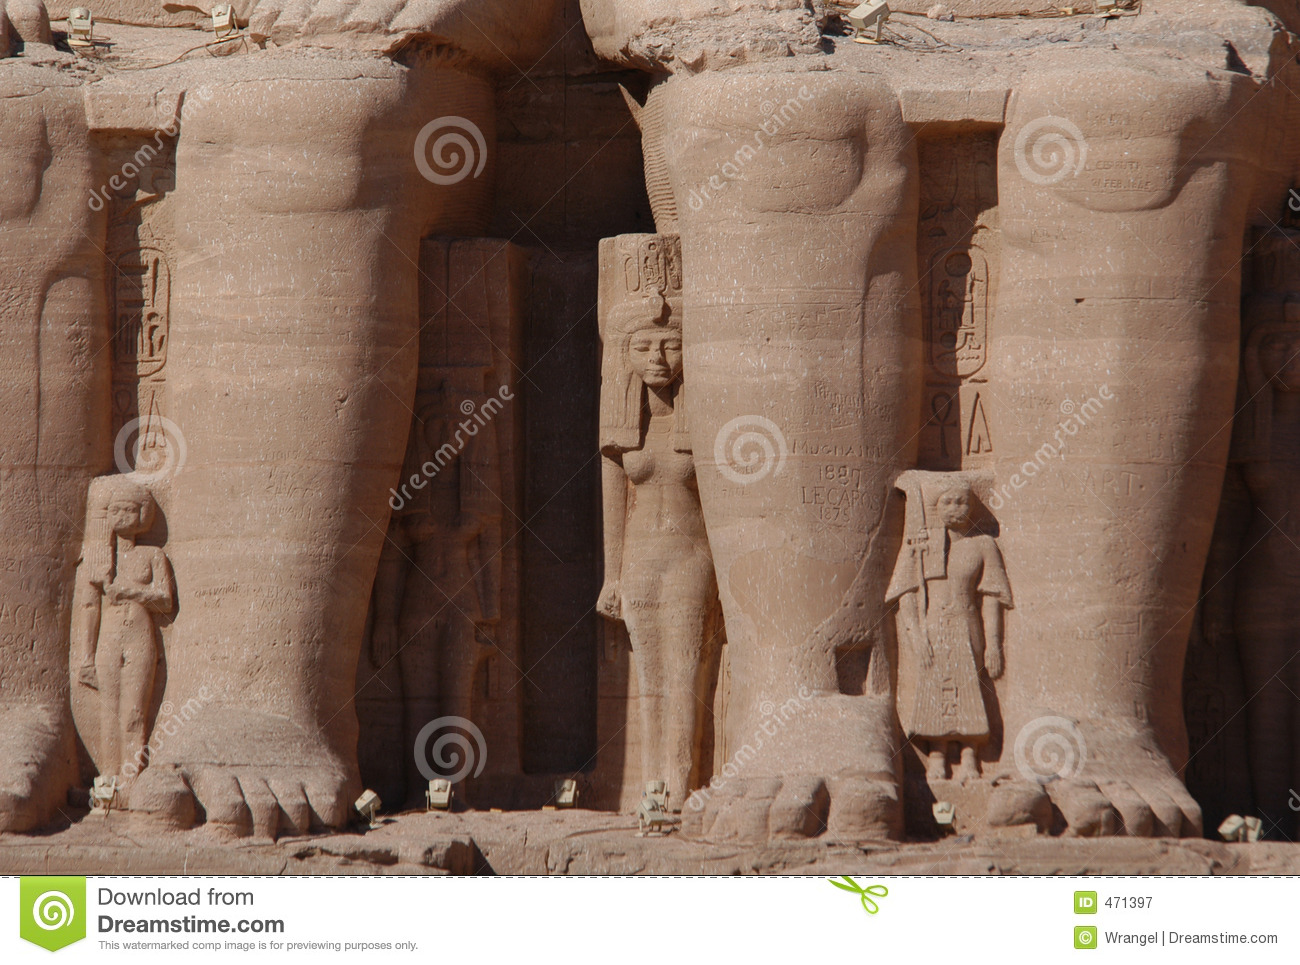 a comparison of ramses design and egyptian temples Compare and contrast egyptian and greek temples use the temple of ramses ii, abu simbel to compare to the parthenon in athens, looking at purpose, function, & architectural.